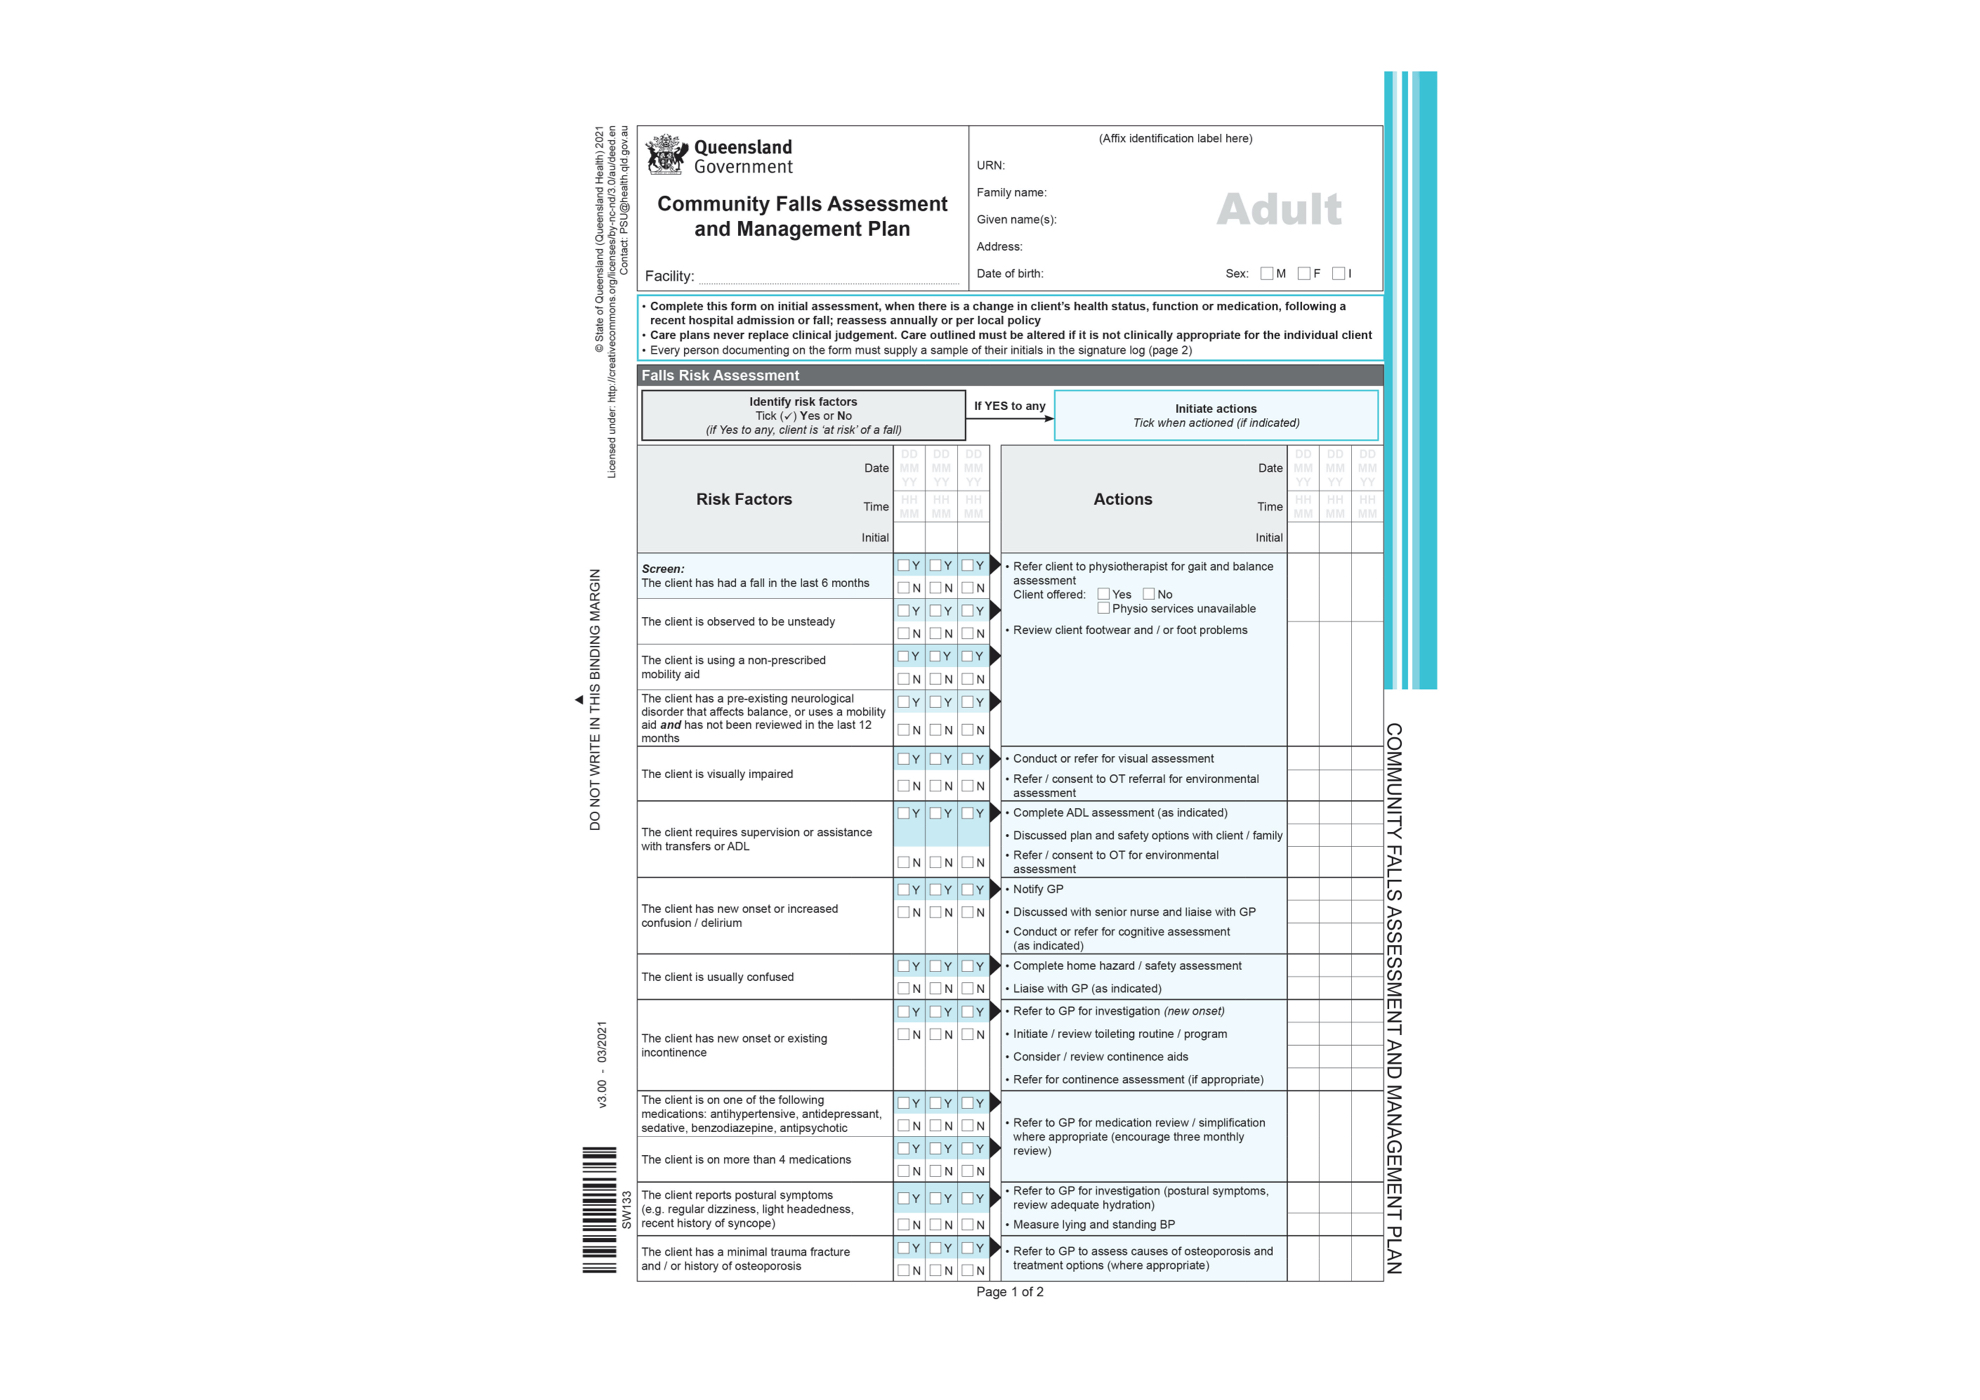 Clinical Forms - Community Falls Assessment and Management Plan